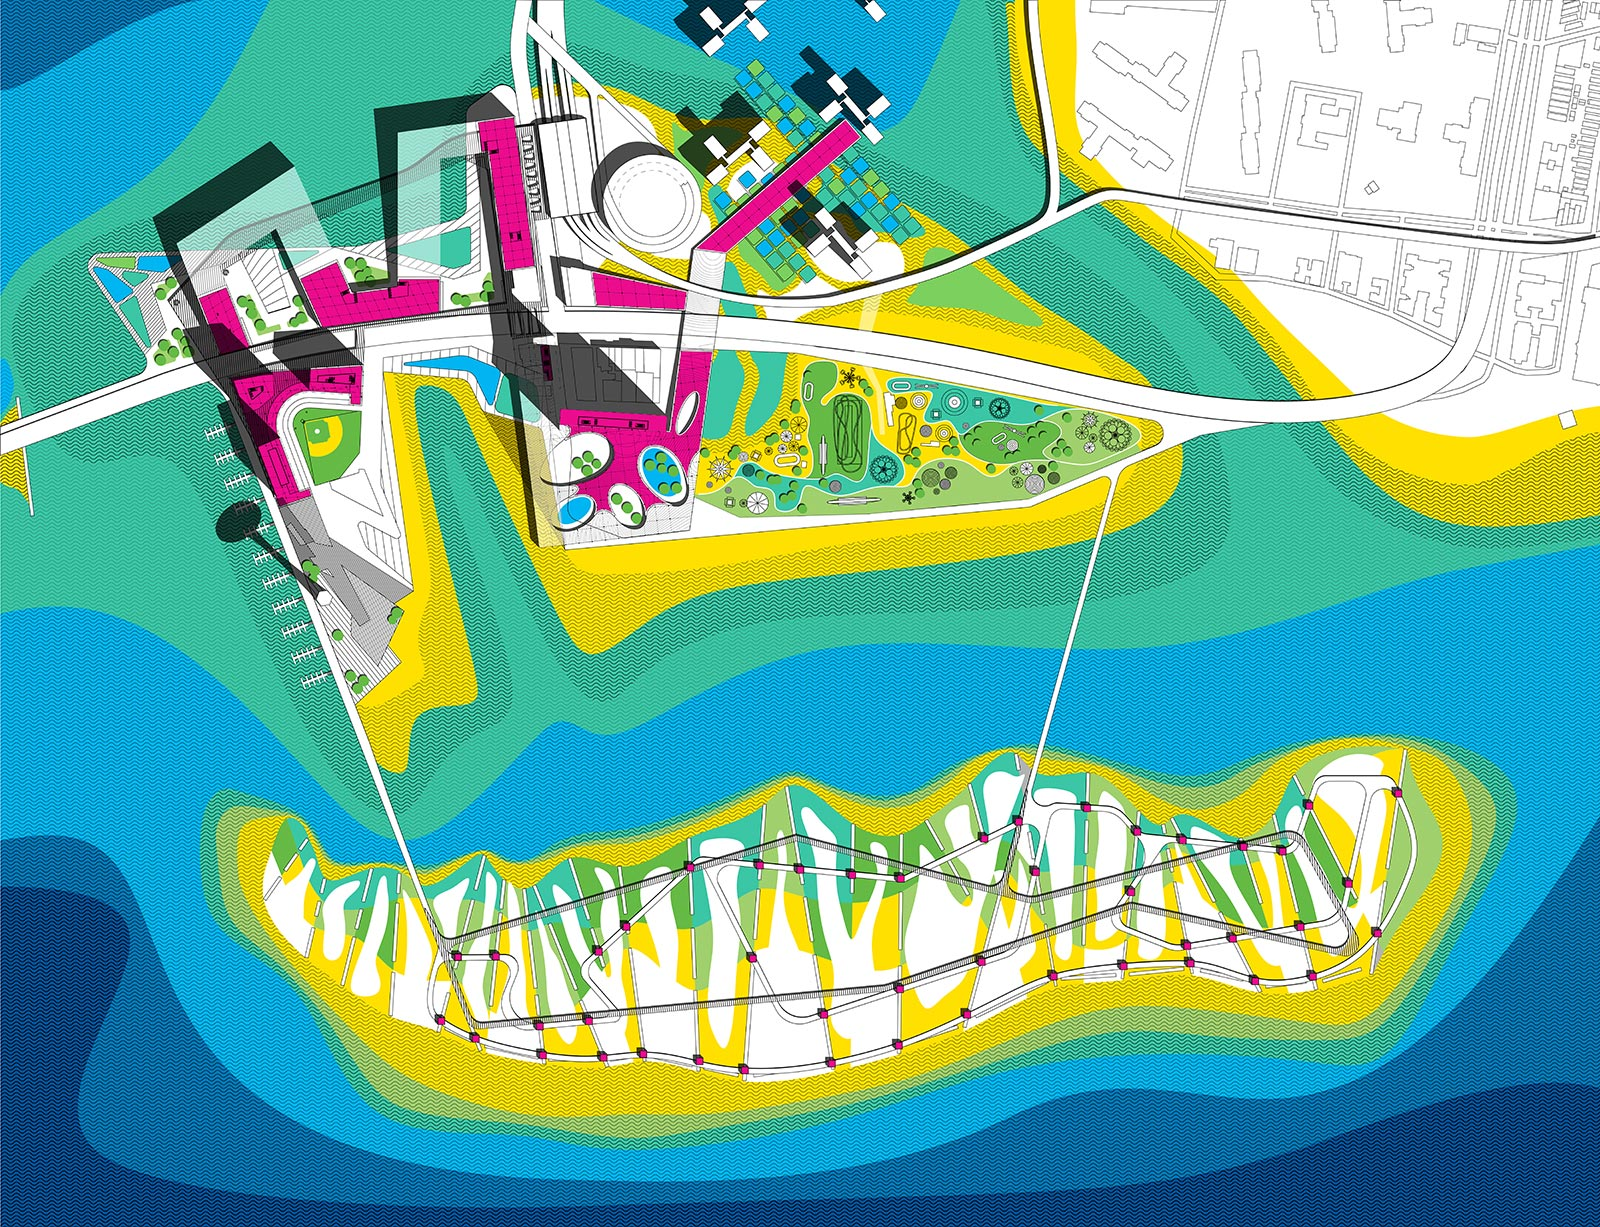 CISL masterplan concept showing the archipelago strategy for allowing the island to morph back into nature